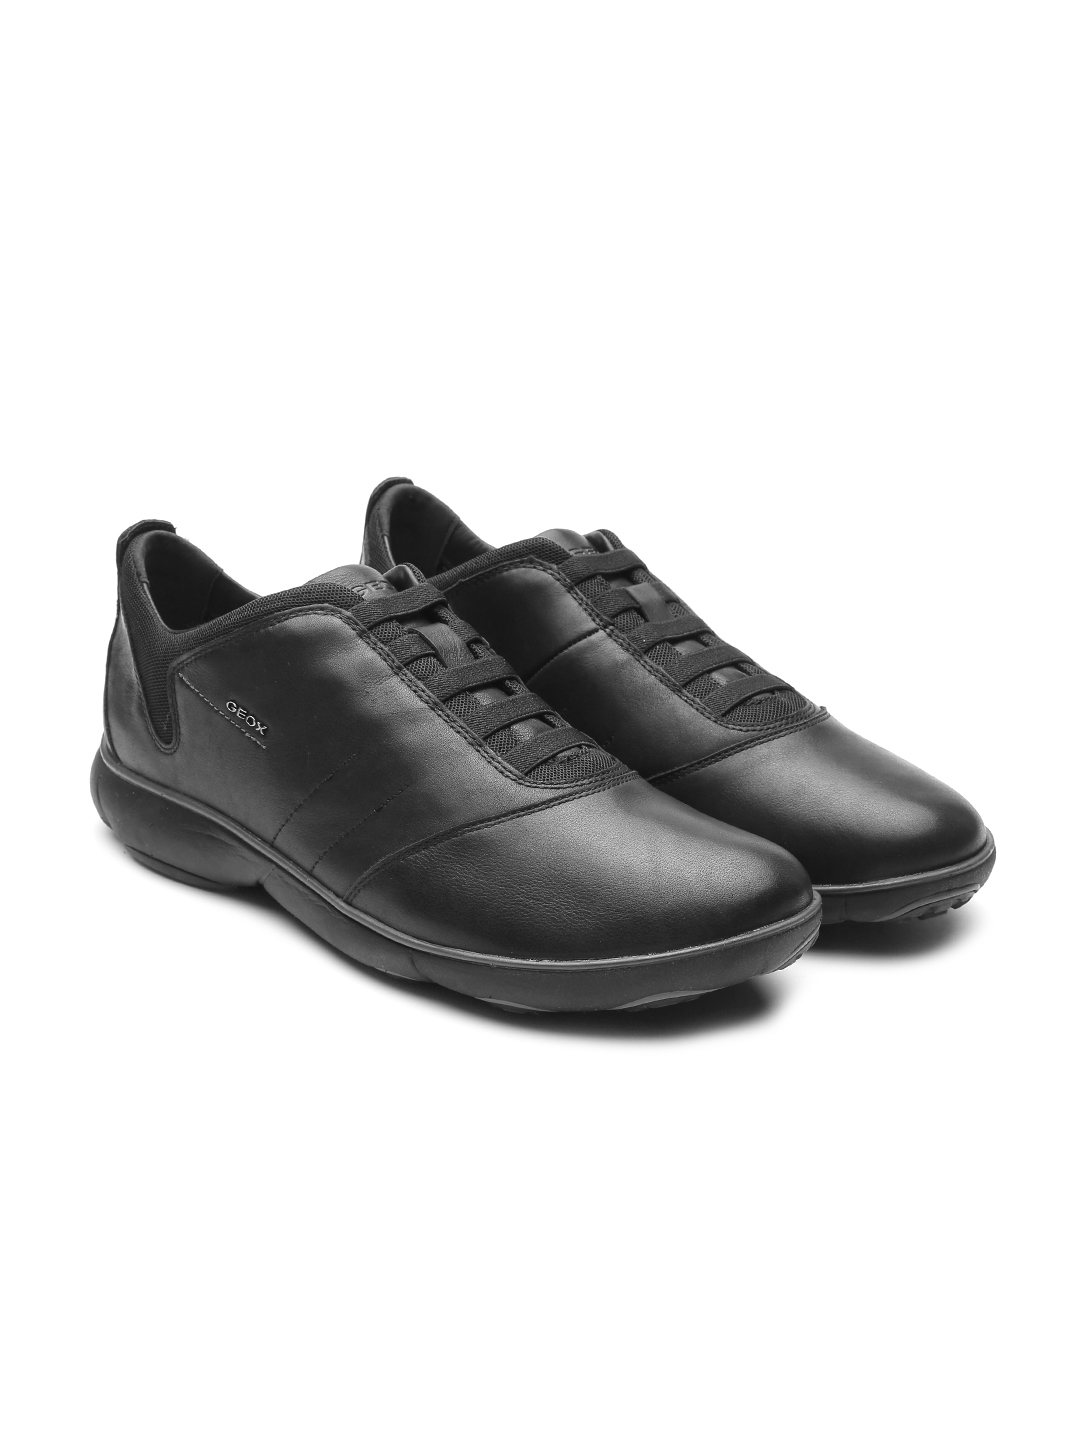 0aa68e50876 Buy Geox Respira Men Black Italian Leather Slip On Sneakers - Casual ...